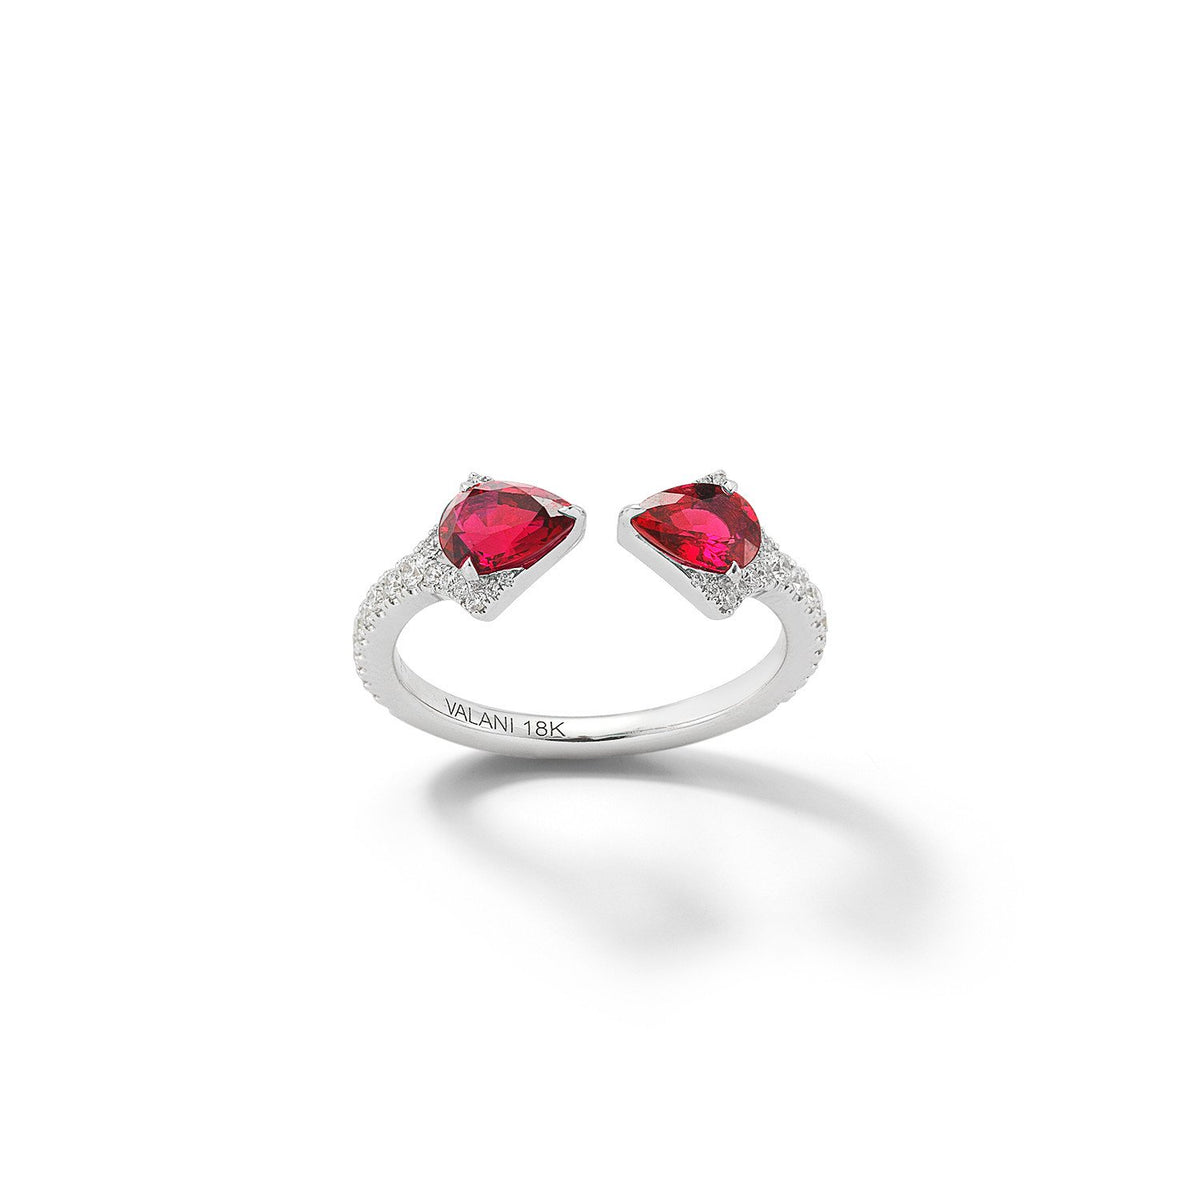 Valani 18K White Gold Rival Ruby Two Stone Ring